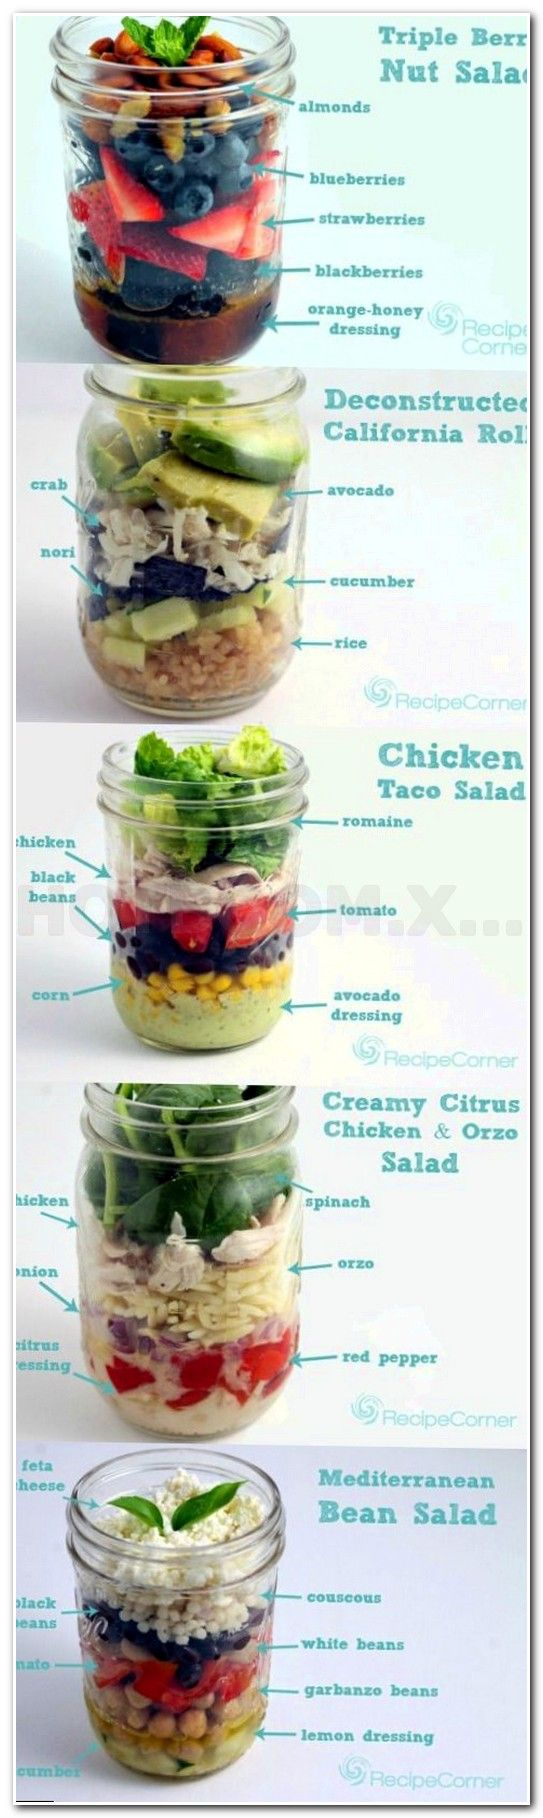 Quick Weight Loss Meal Plan, Tips On How To Lose Weight, Glycemic Index  Calculator